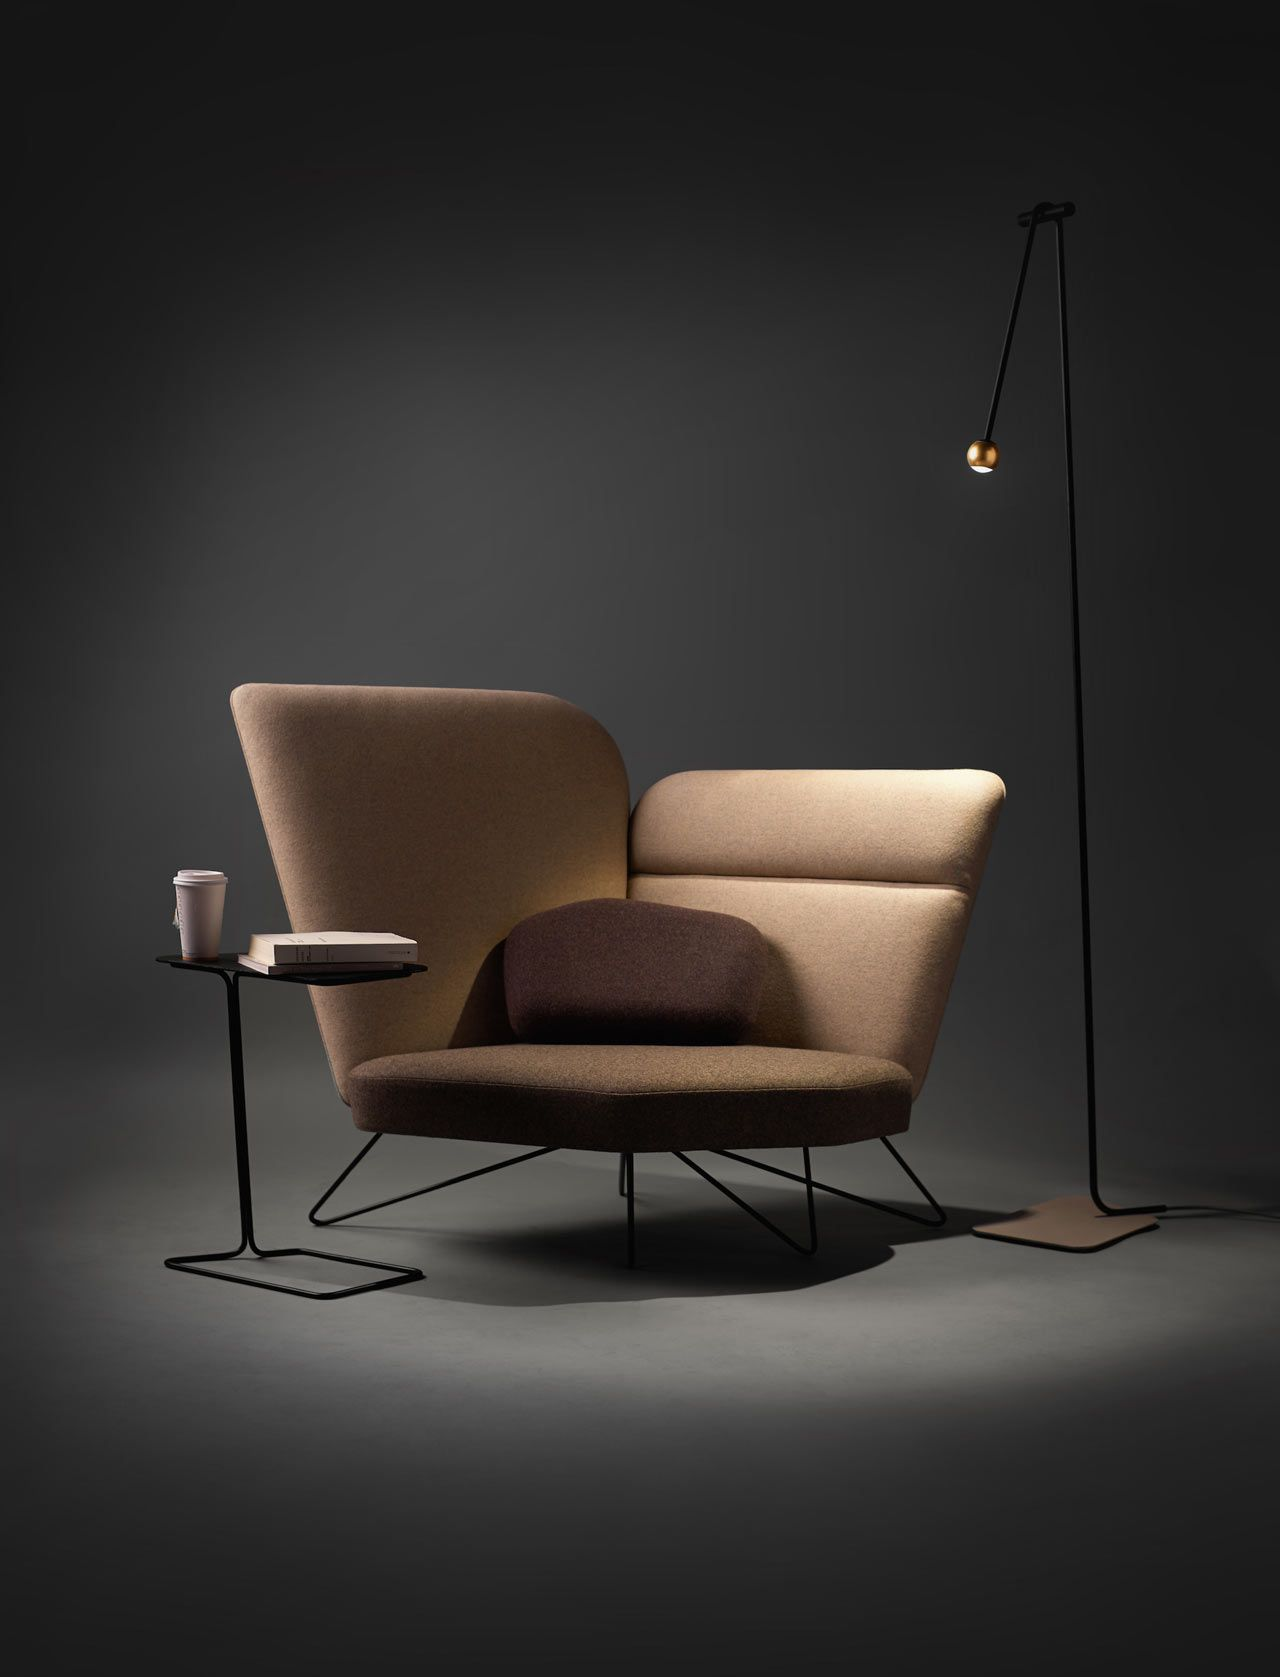 living room chair, grey wall and floor, brown chair, black ironed side table, black iron floor lamp